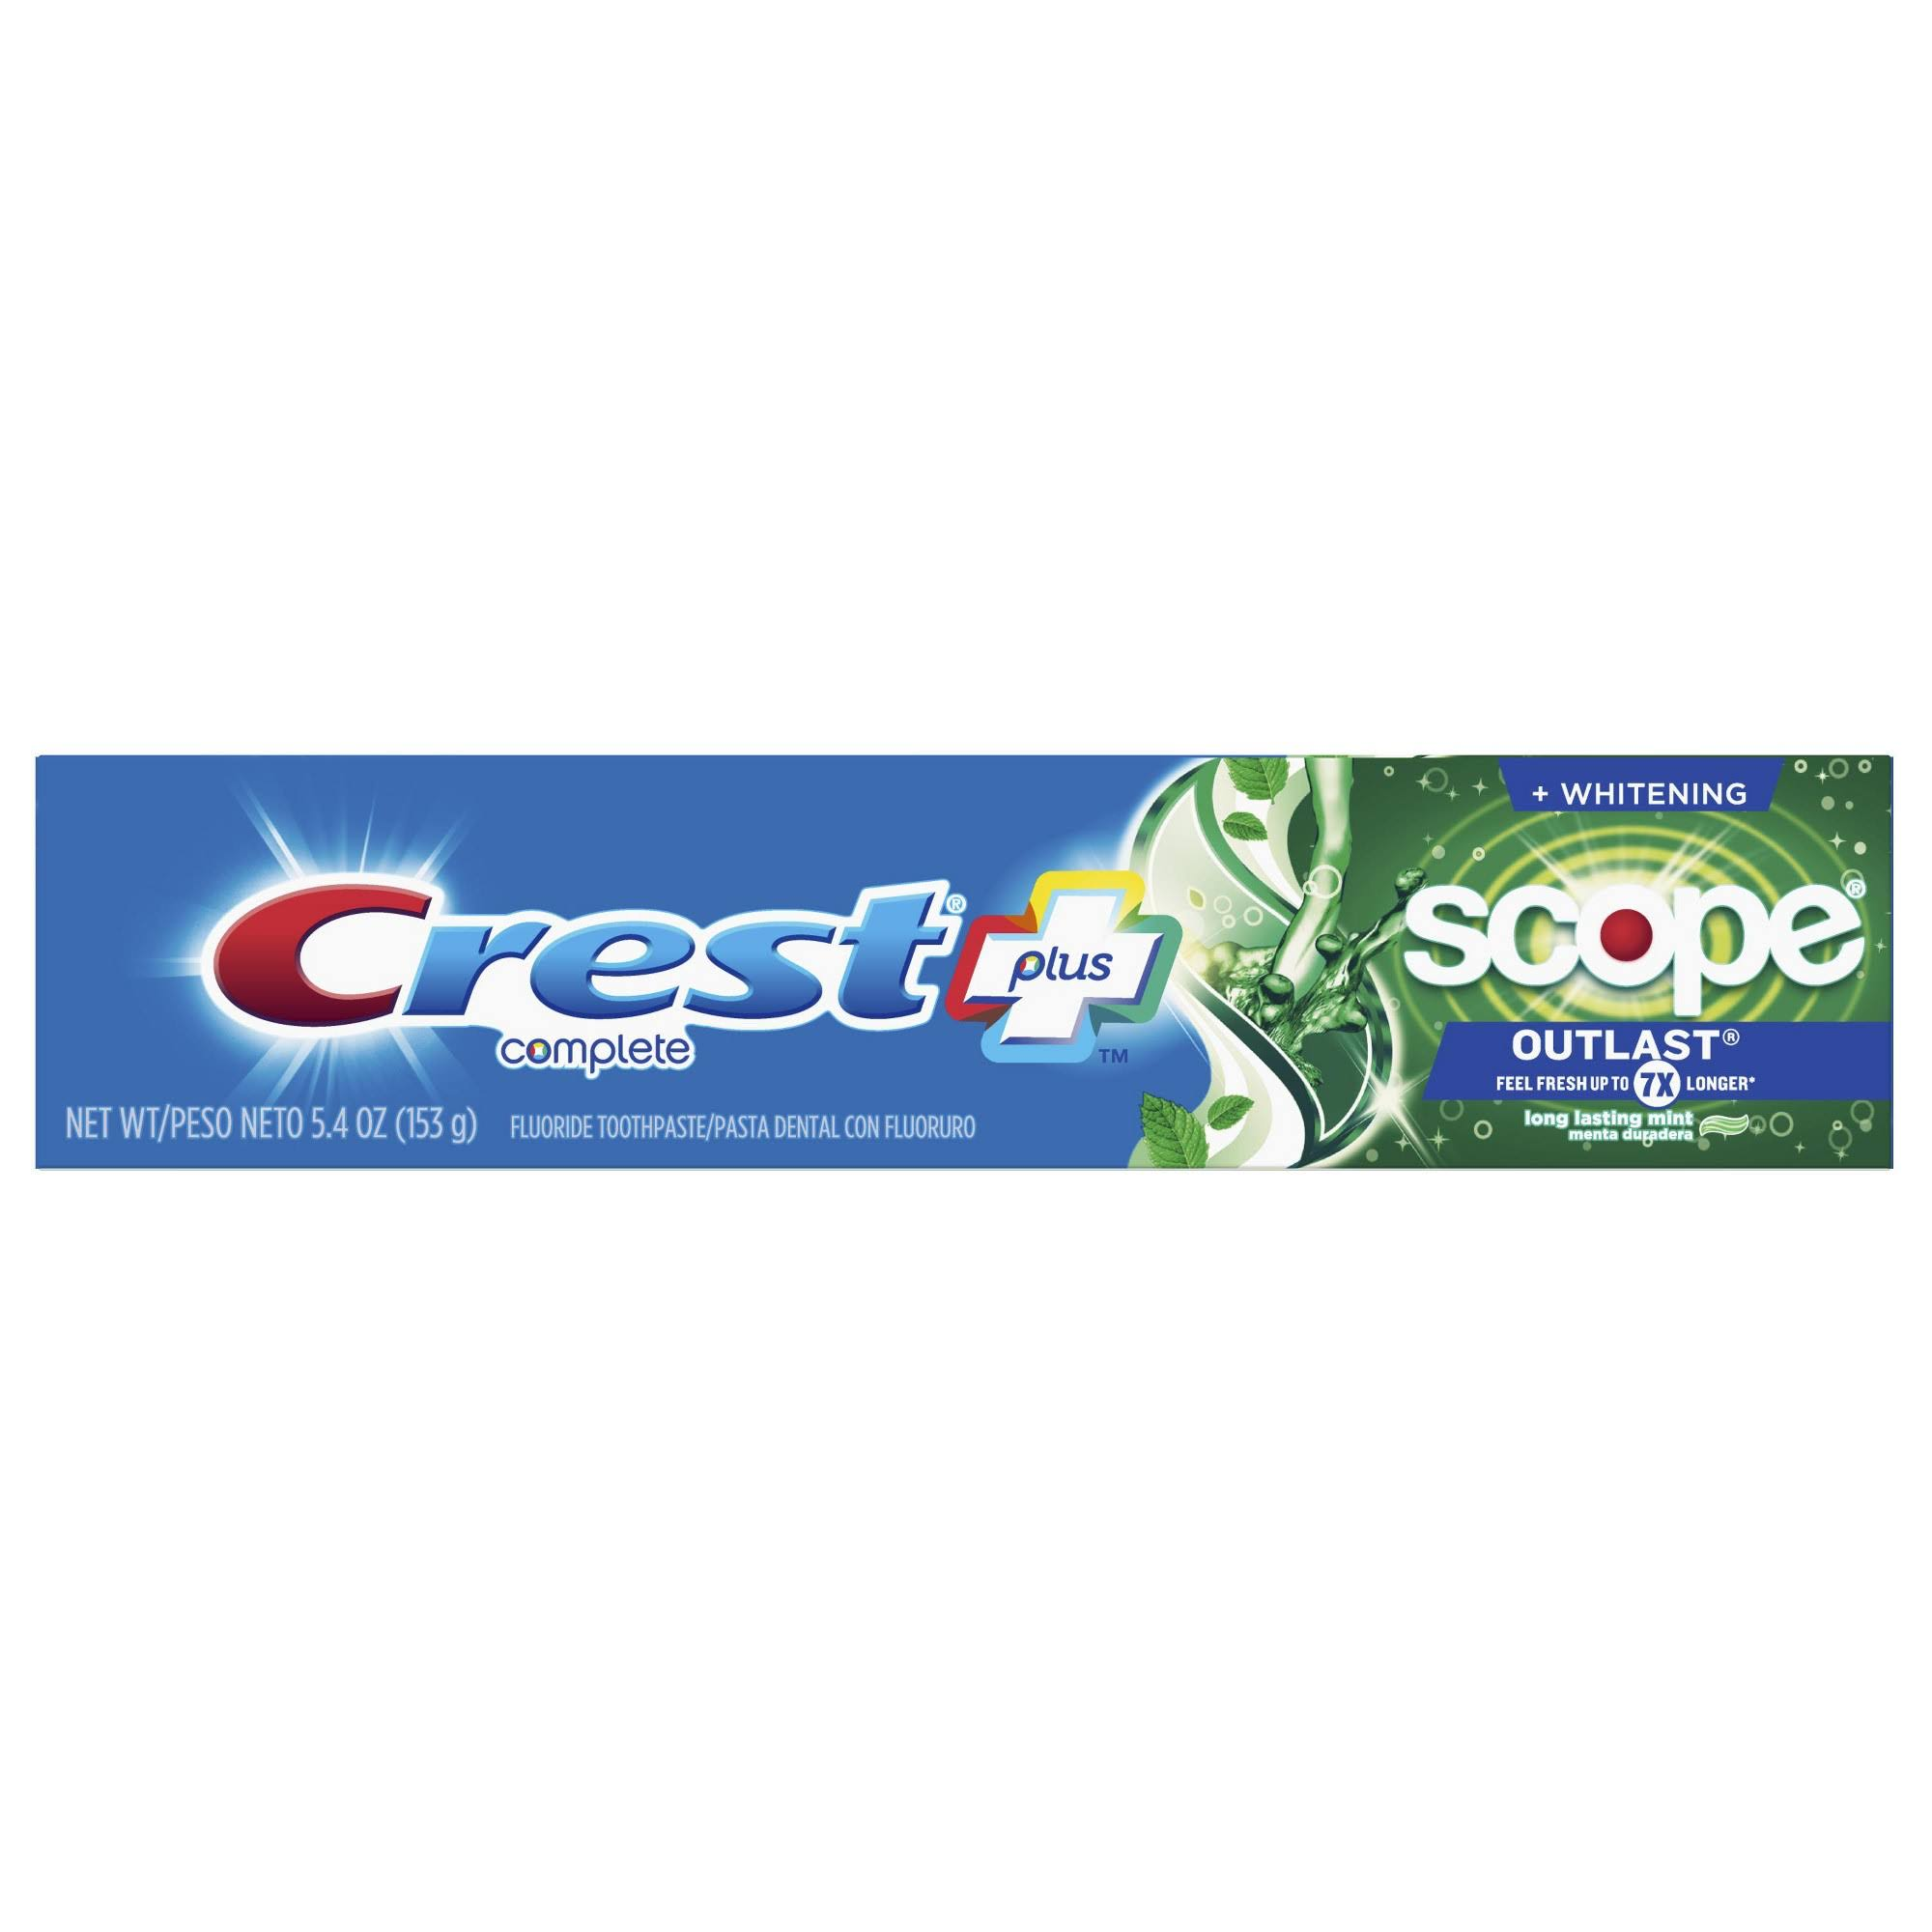 Crest Scope Outlast Complete Whitening Toothpaste - Mint, 5.4oz